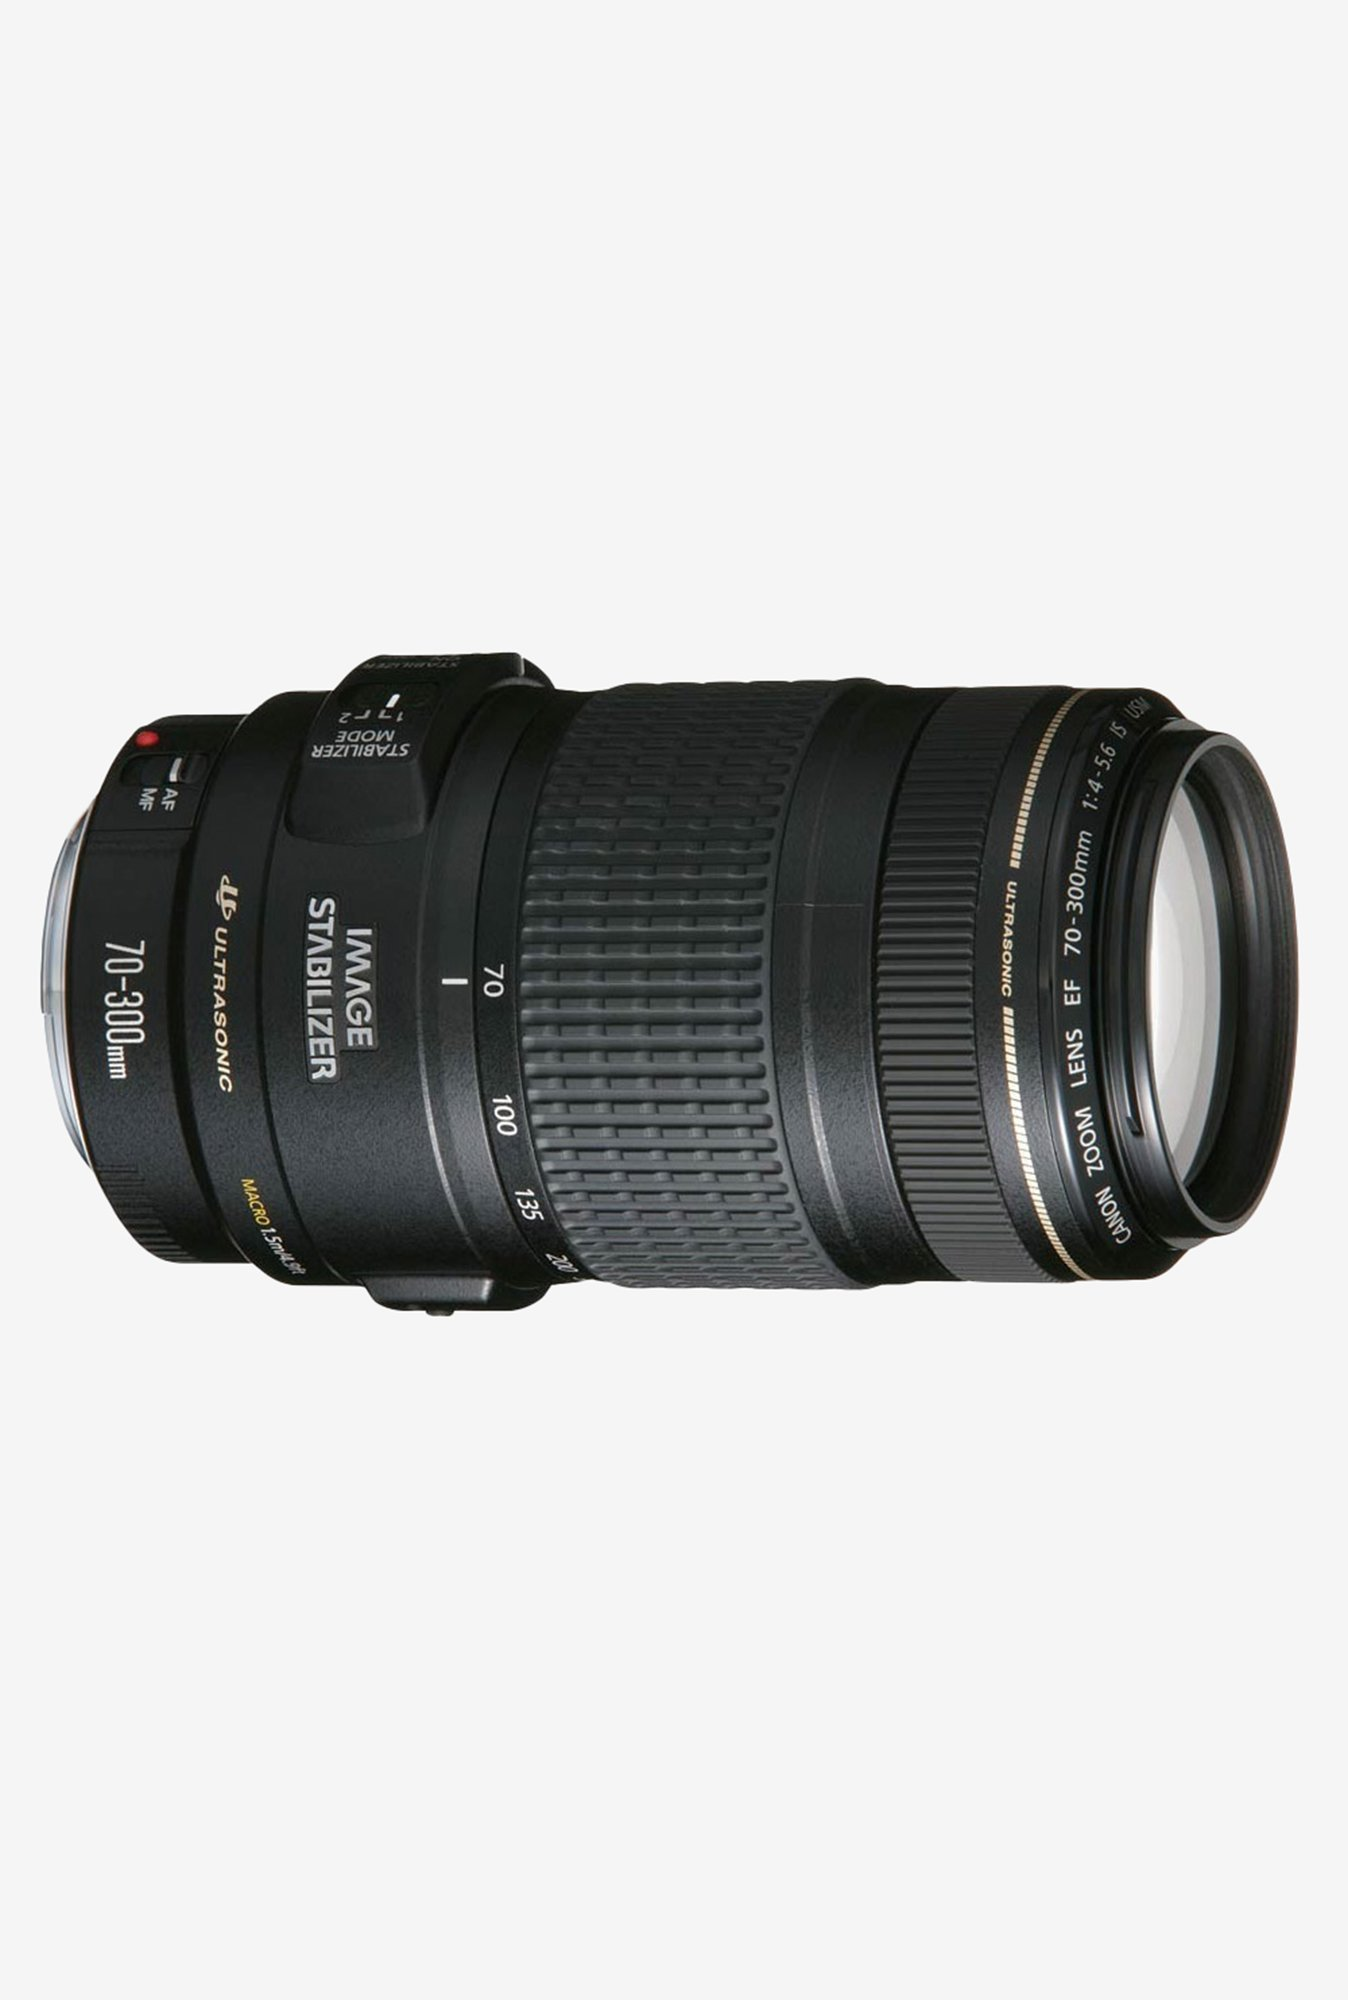 Canon EF 70-300mm f/4-5.6 IS USM Lens Black